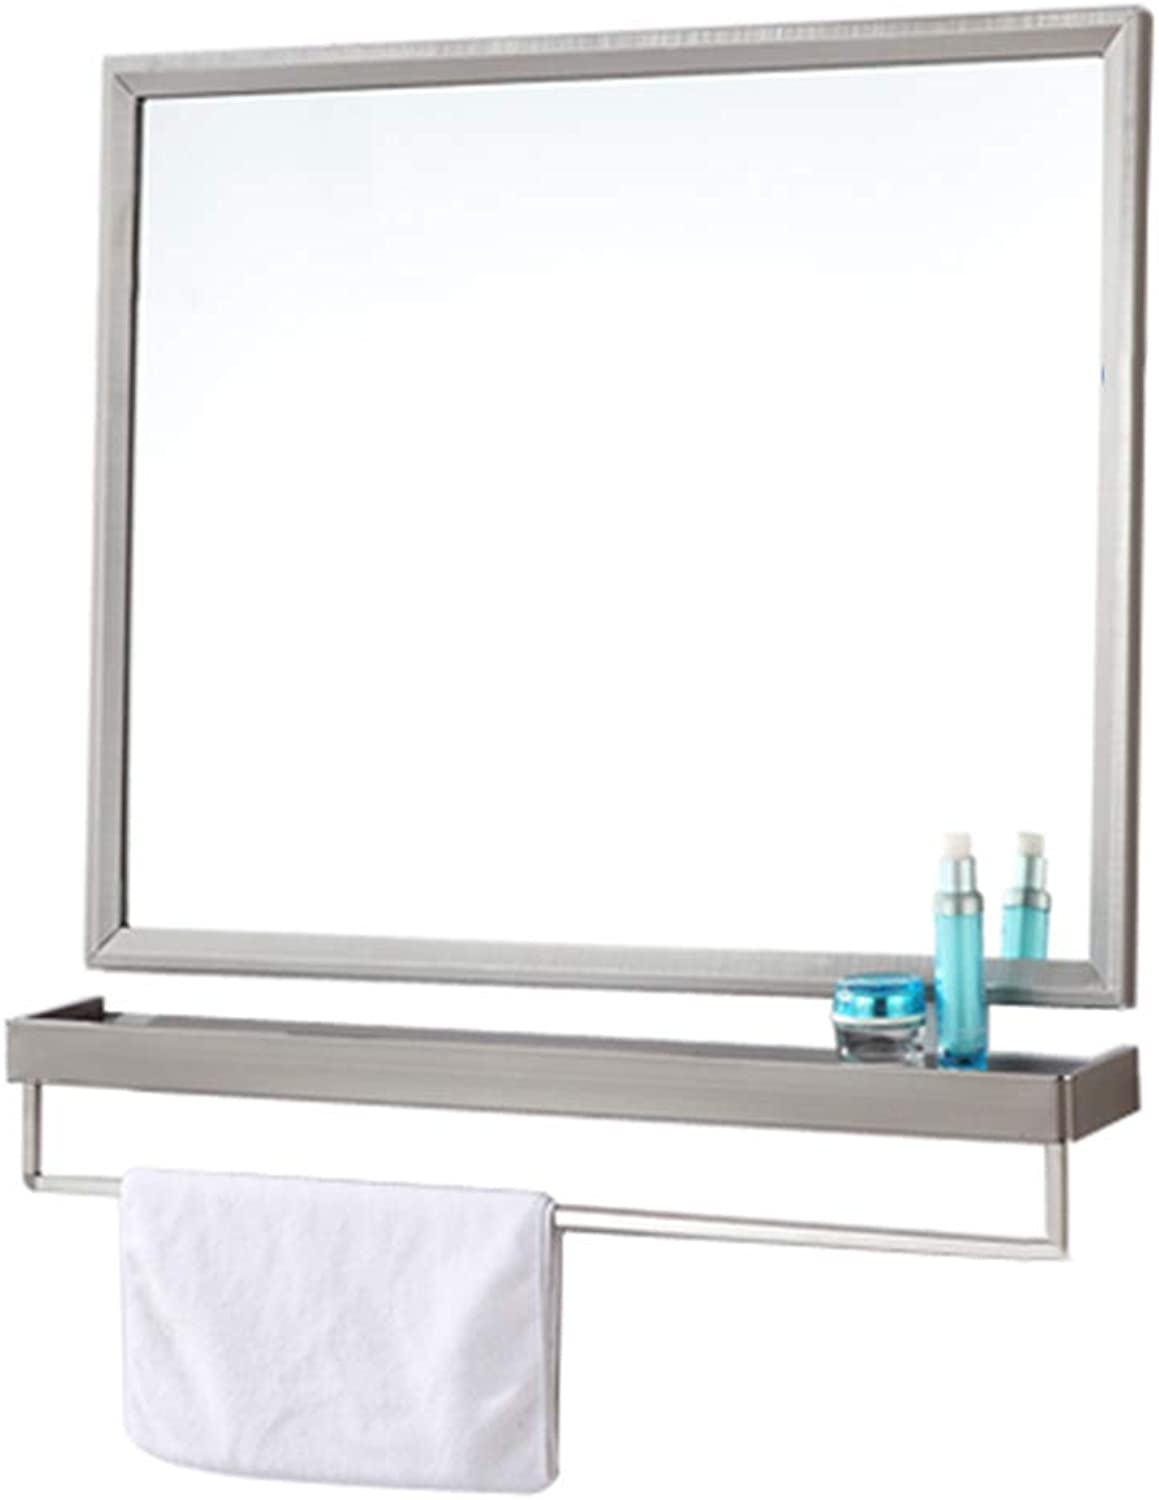 YANZHEN Mirror Wall Mirror Bathroom Wall-Mounted Shelf Toilets Combination Simple Stainless Steel, 8 Size